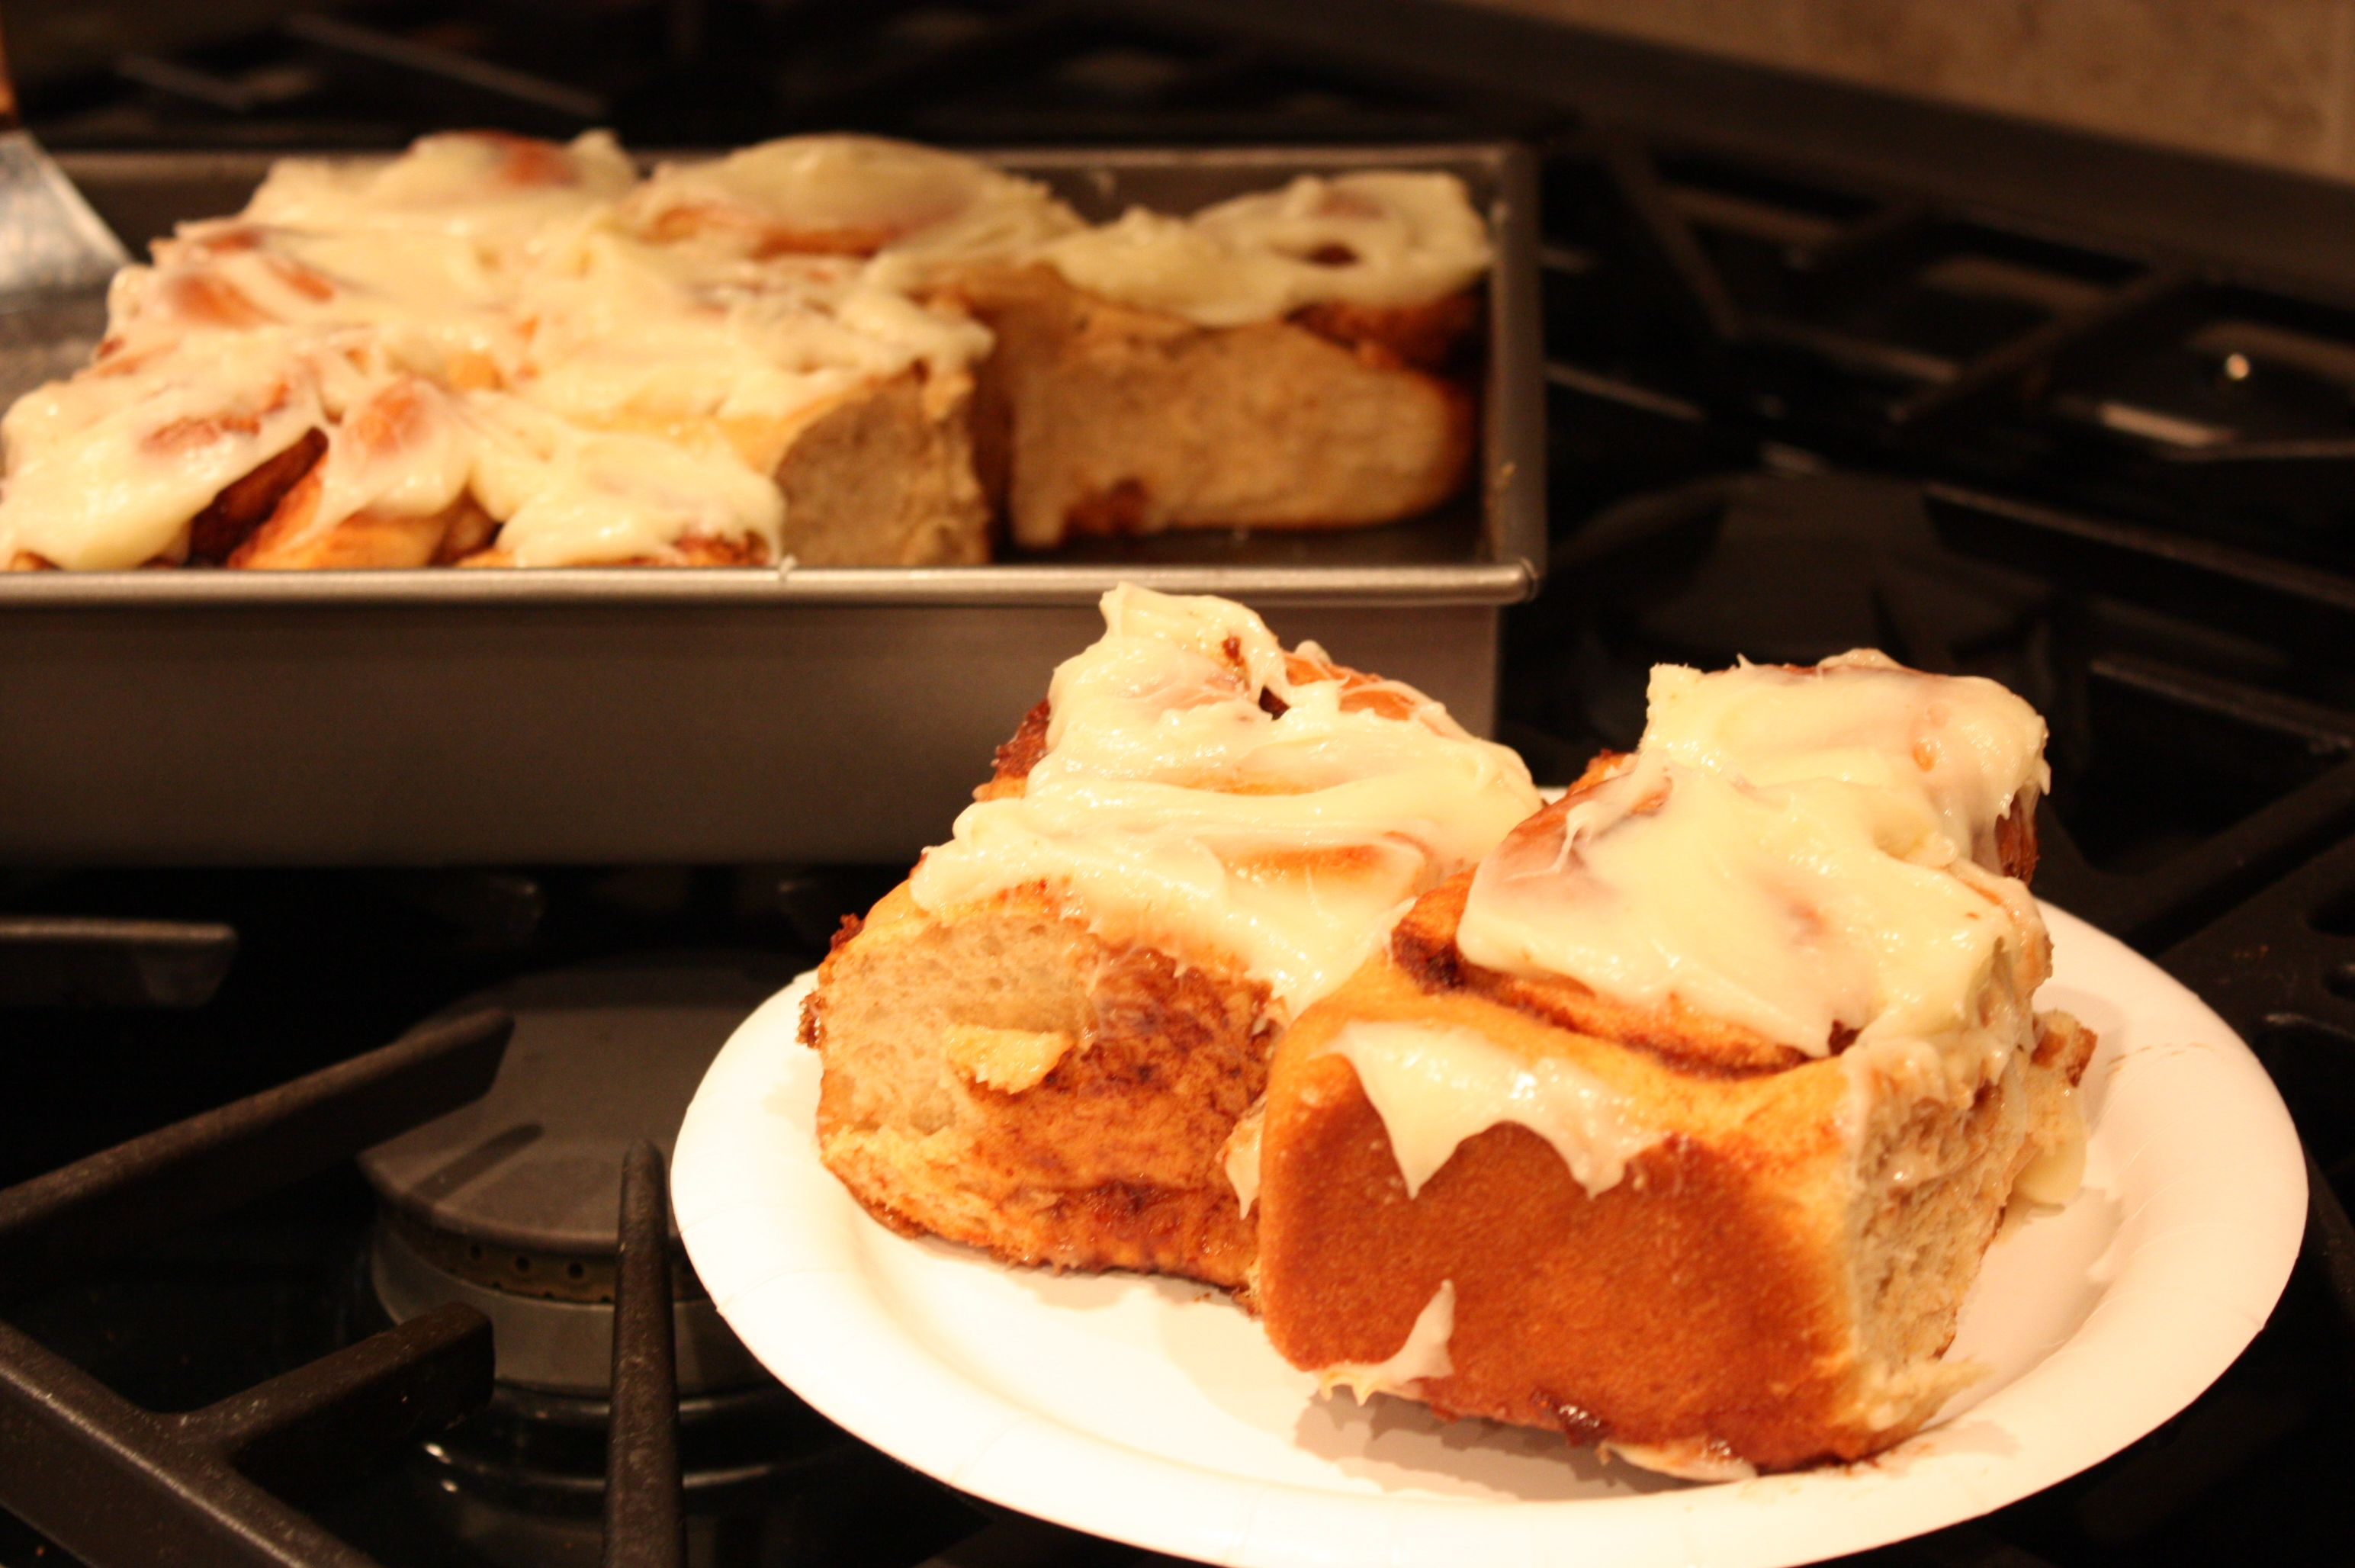 Homemade cinnamon rolls with gooey cream cheese icing. I could eat these everyday!